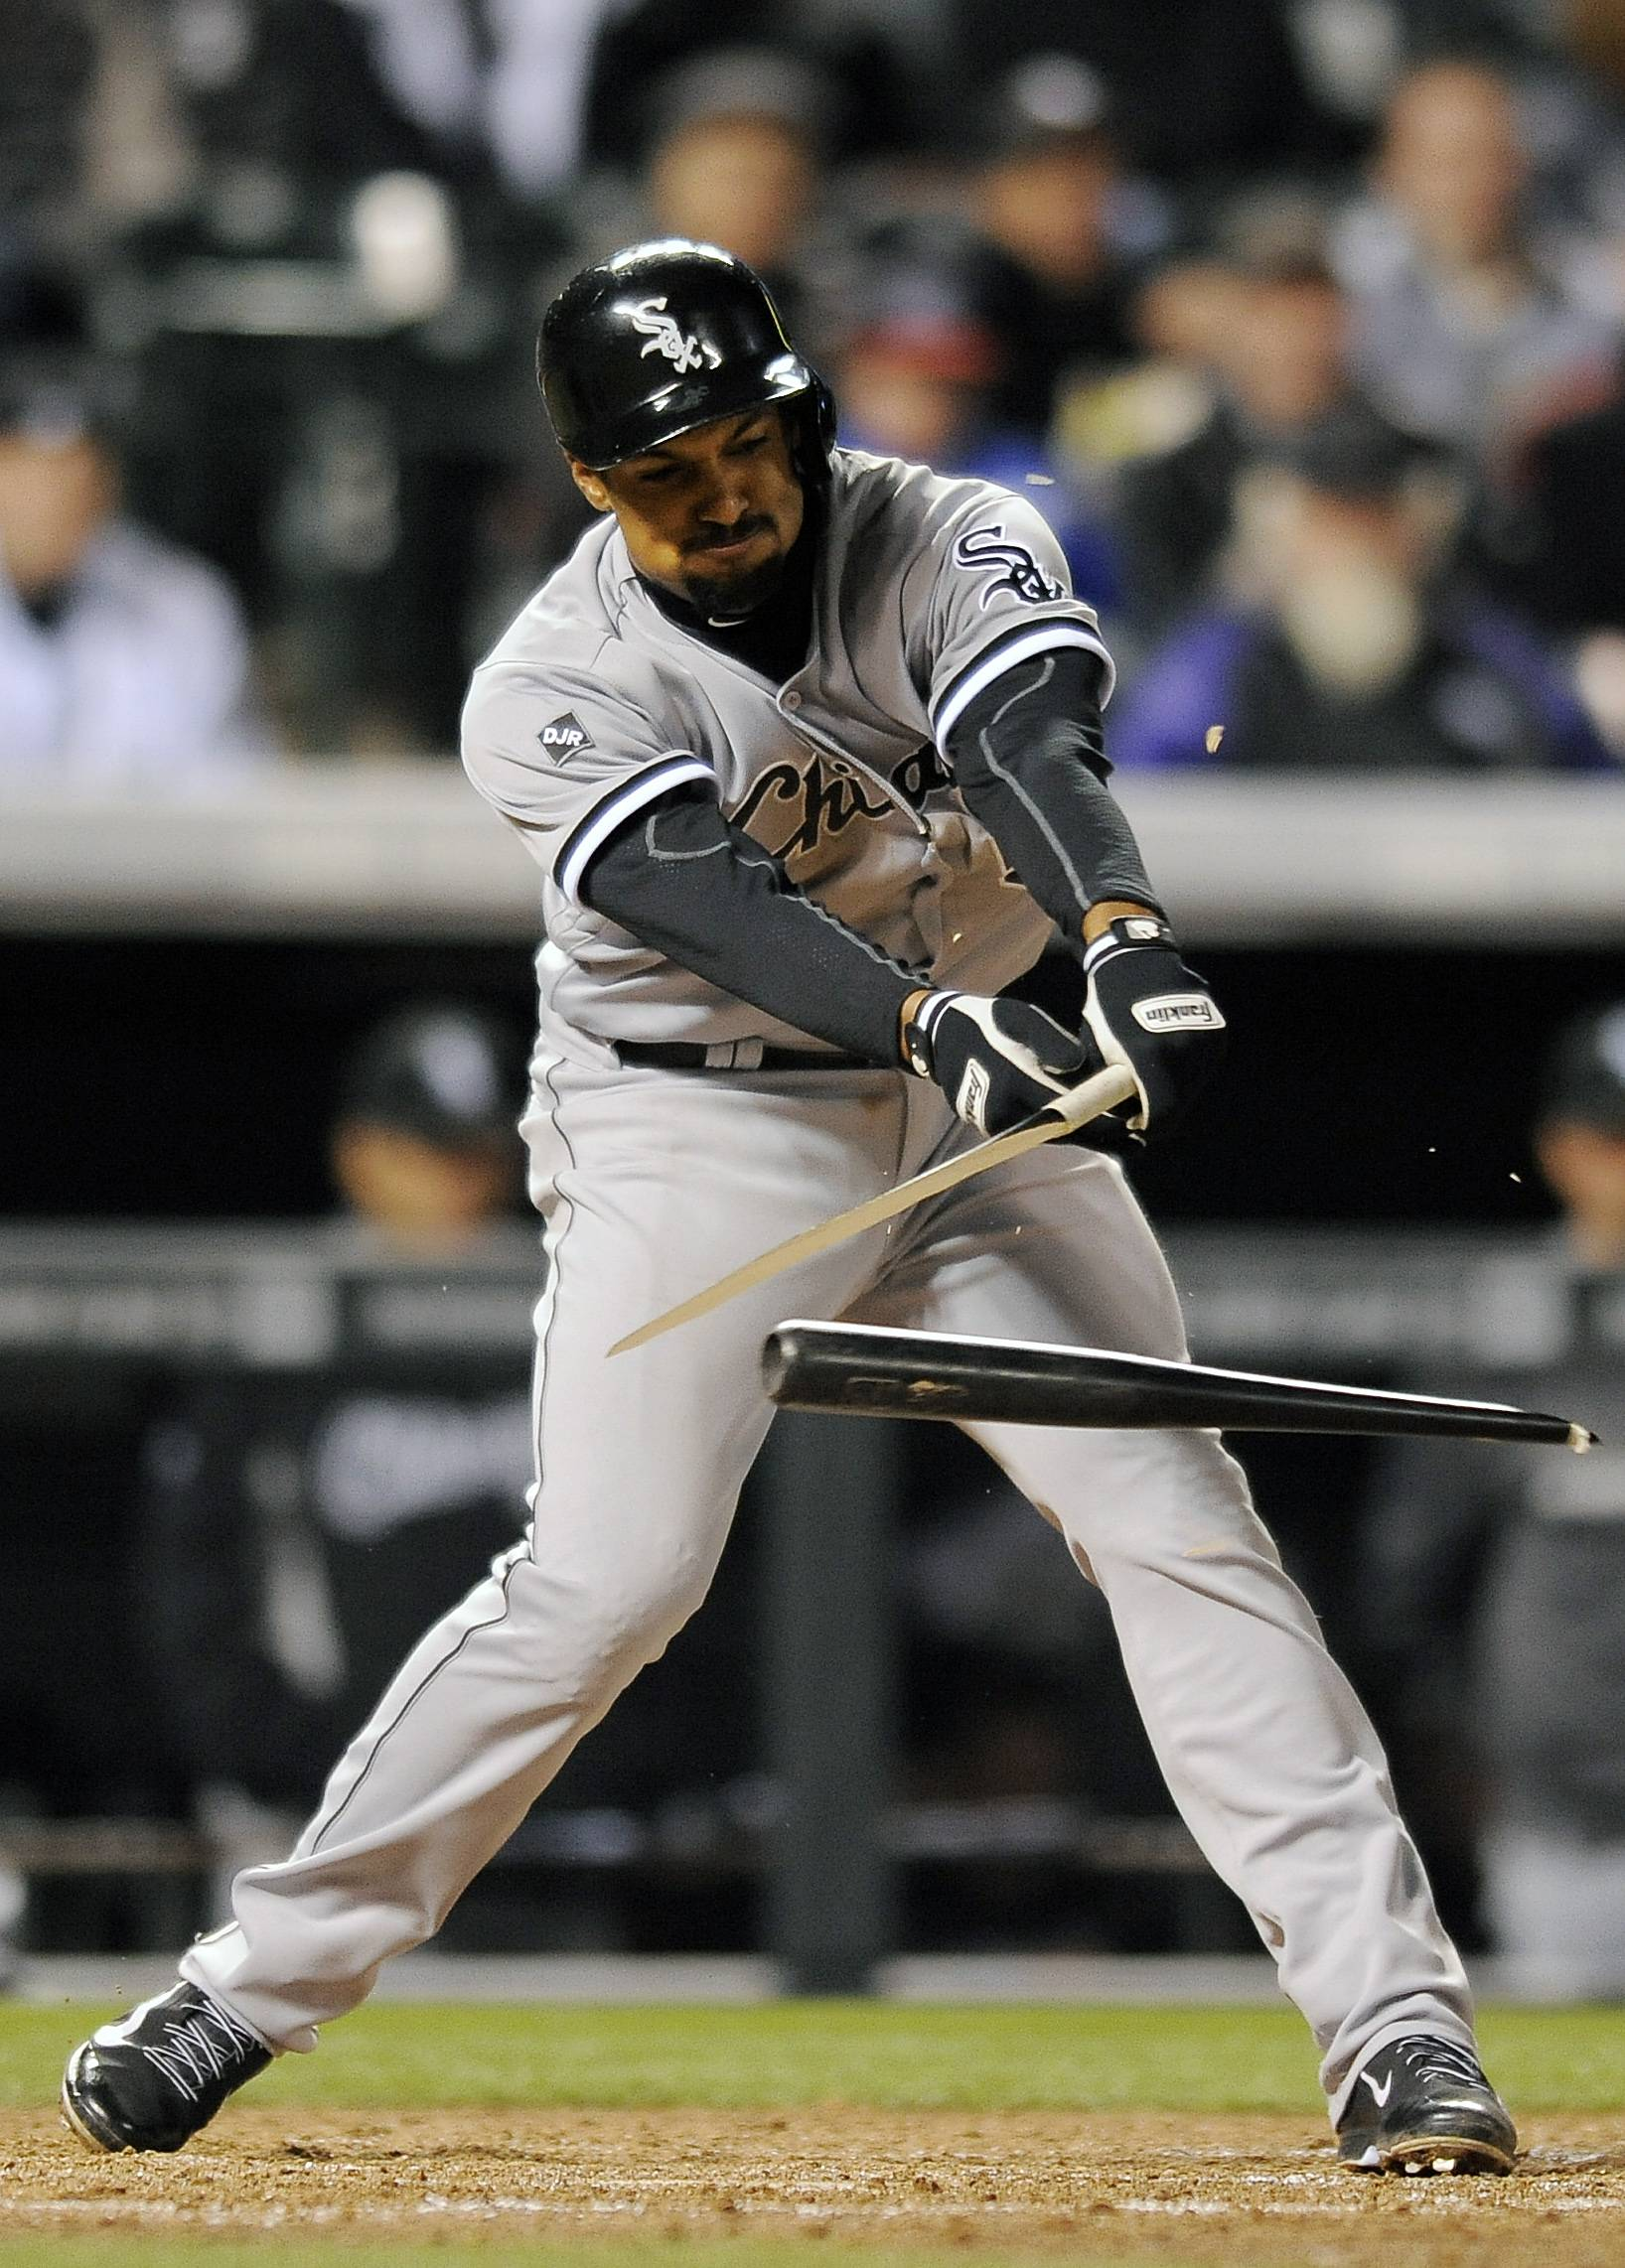 Marcus Semien of the White Sox breaks his bat on a groundout in the sixth inning of the MLB baseball game against the Colorado Rockies on Monday, April 7, 2014, in Denver.